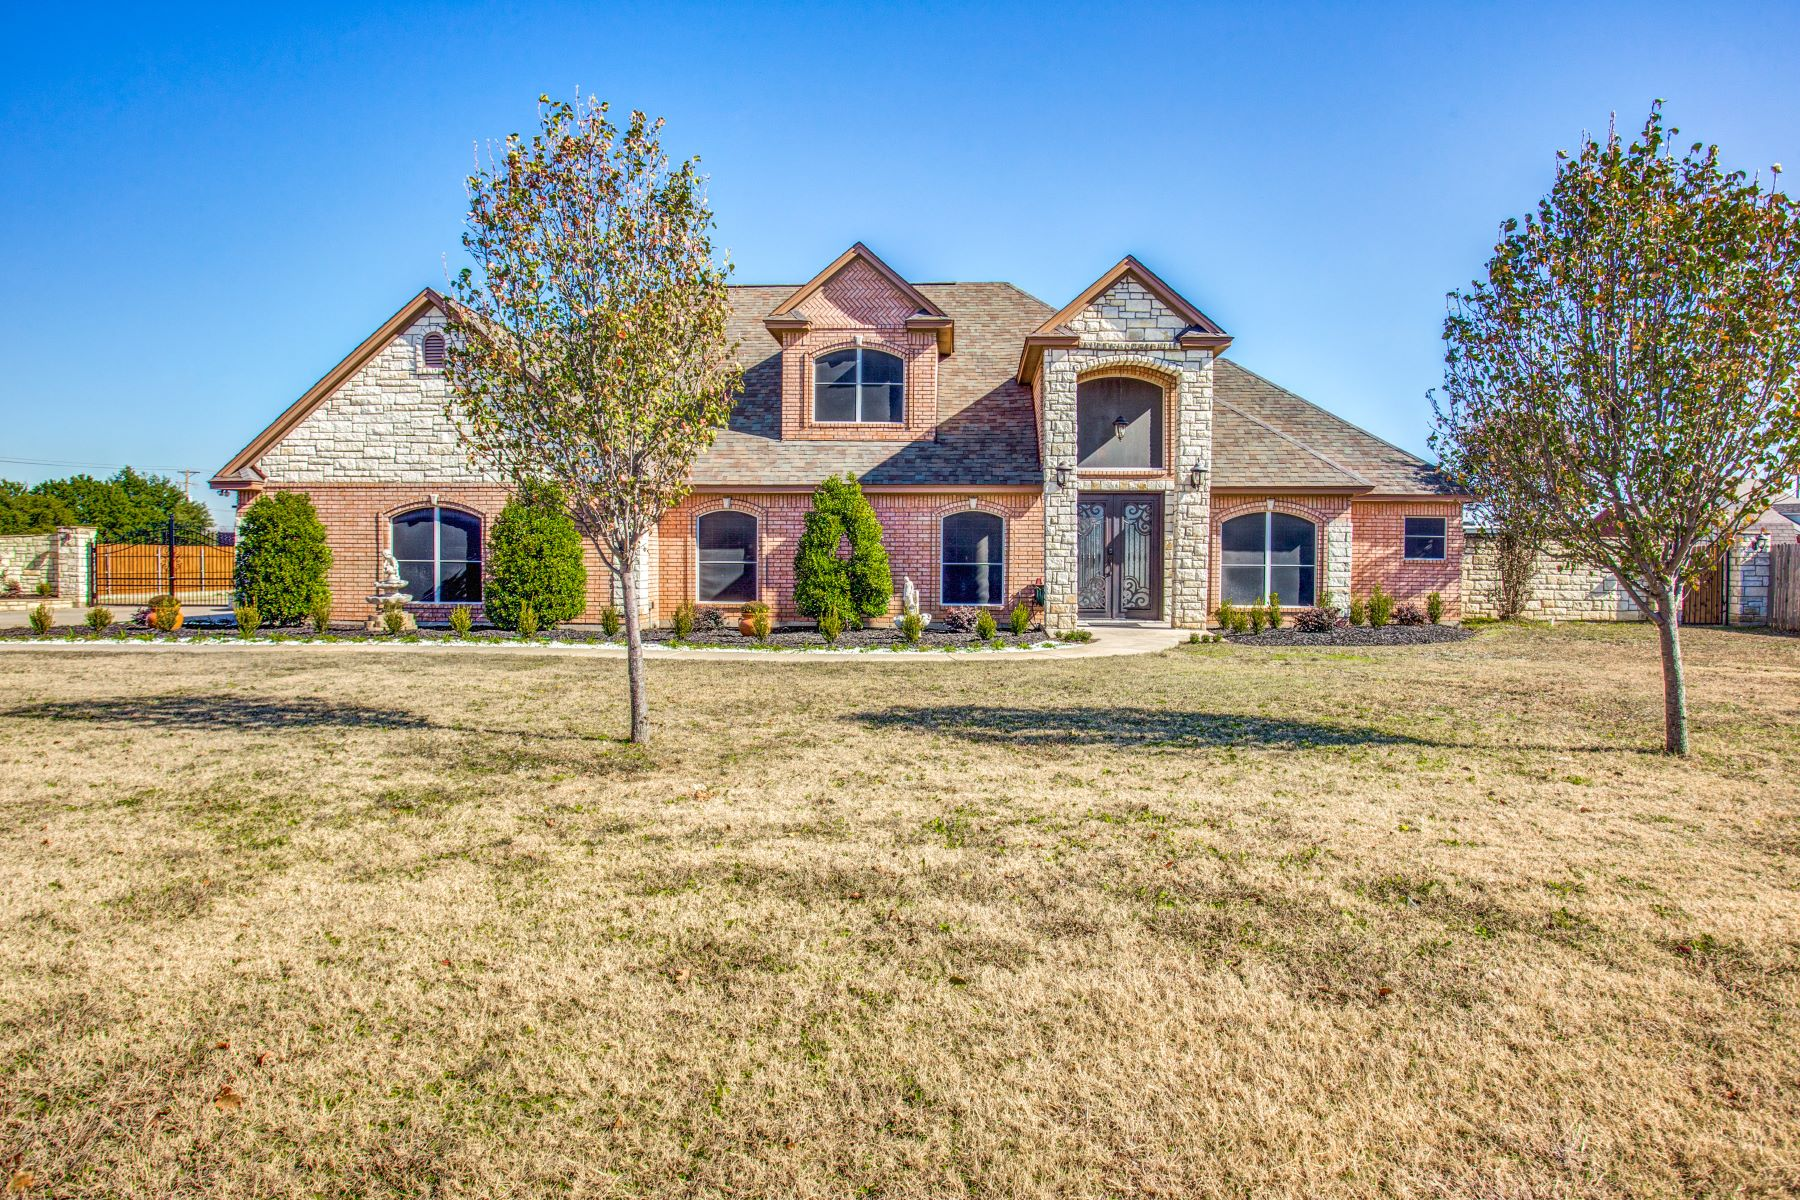 Single Family Homes for Sale at Gorgeous 4 bedroom 3 bath home on almost an acre 836 London Lane Crowley, Texas 76036 United States